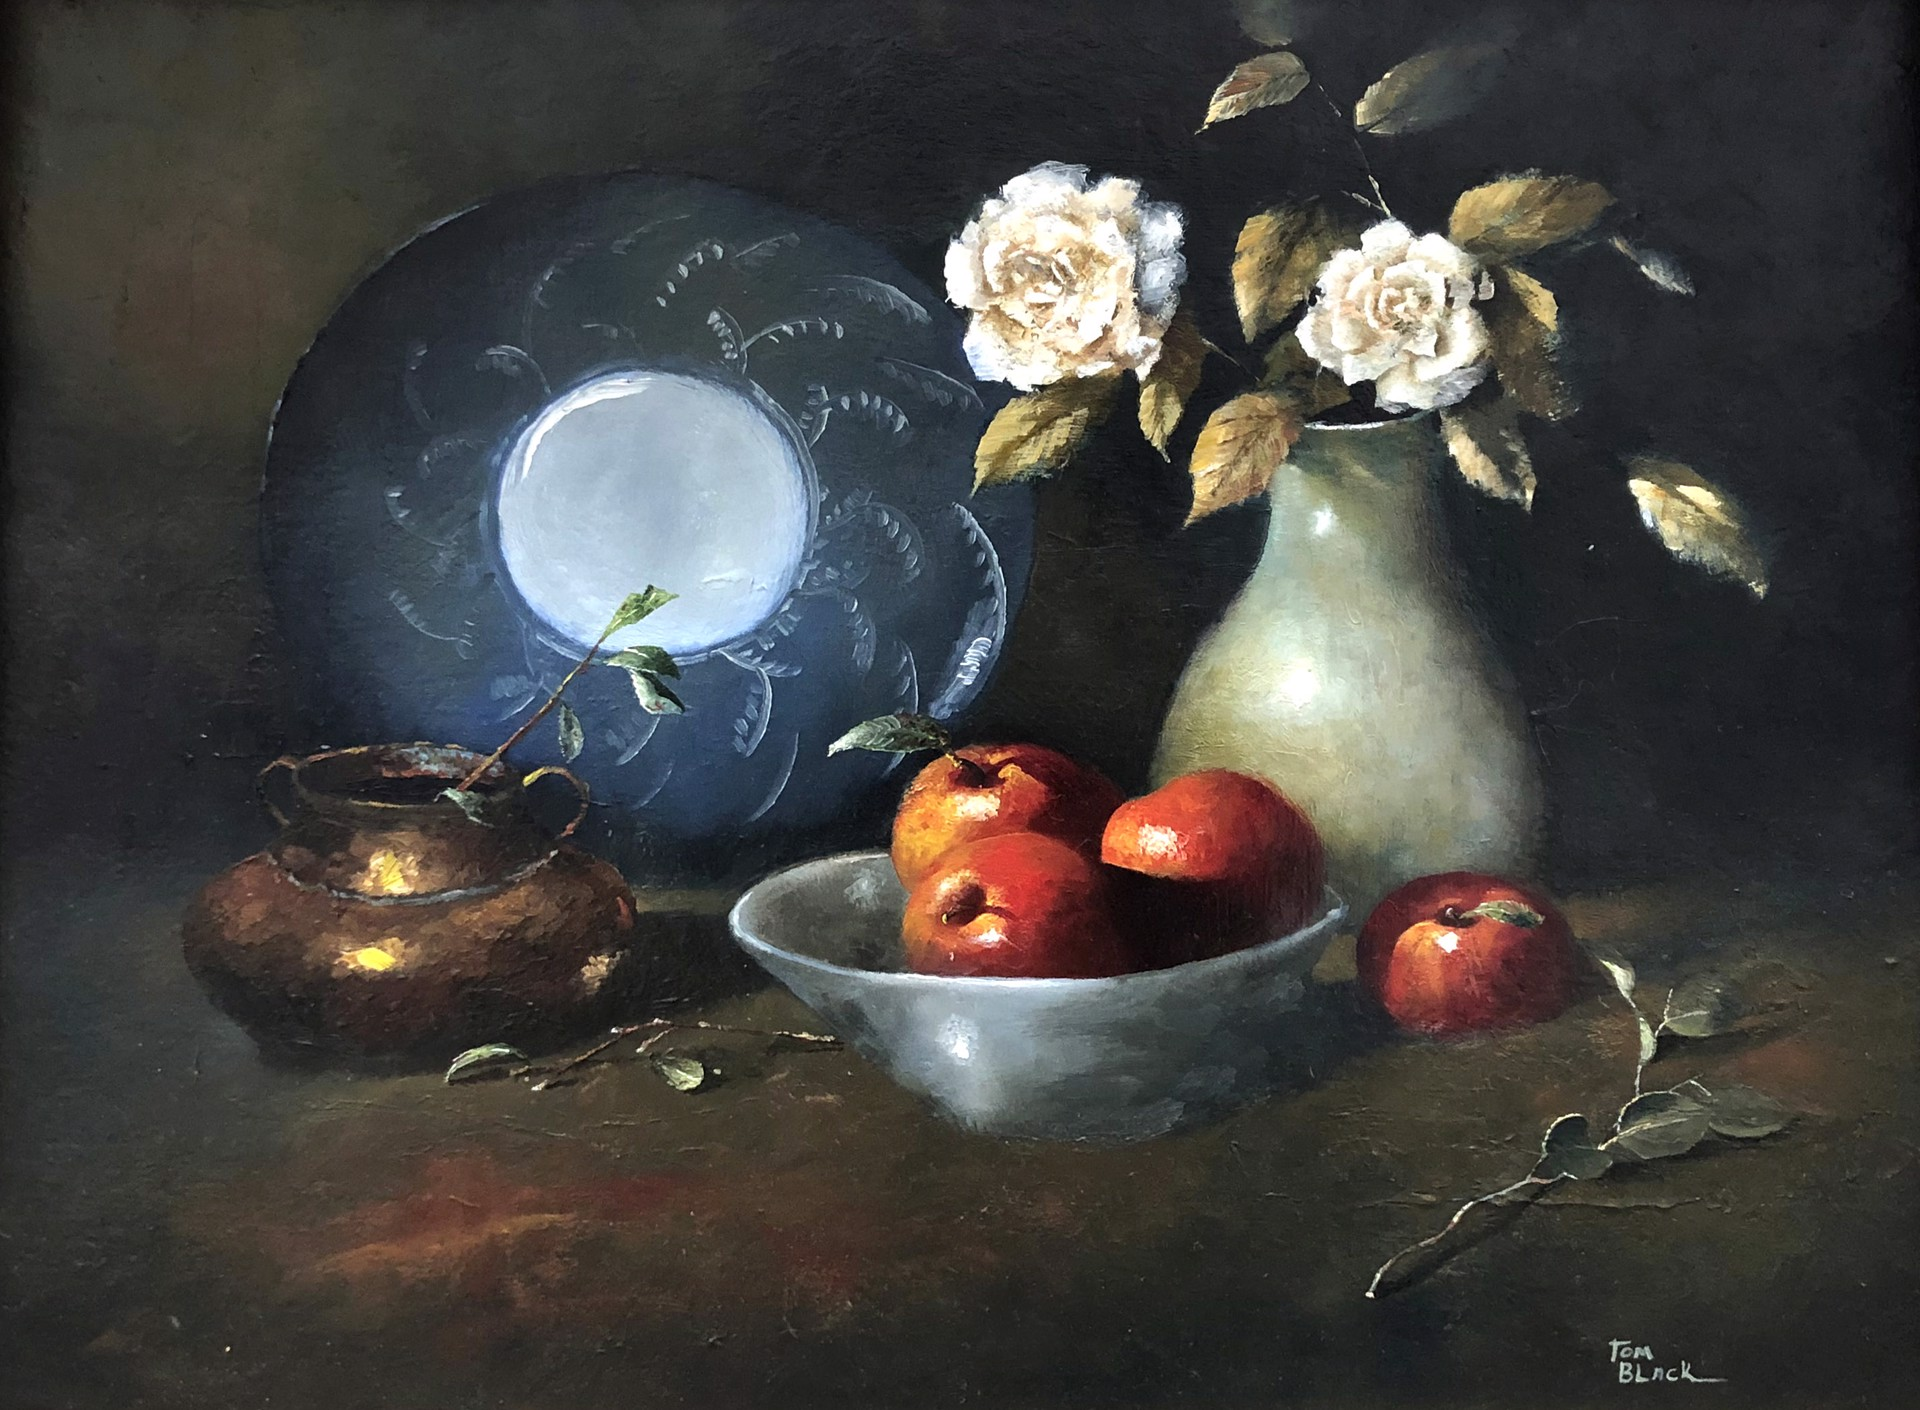 Still Life with Apples by Tom Black